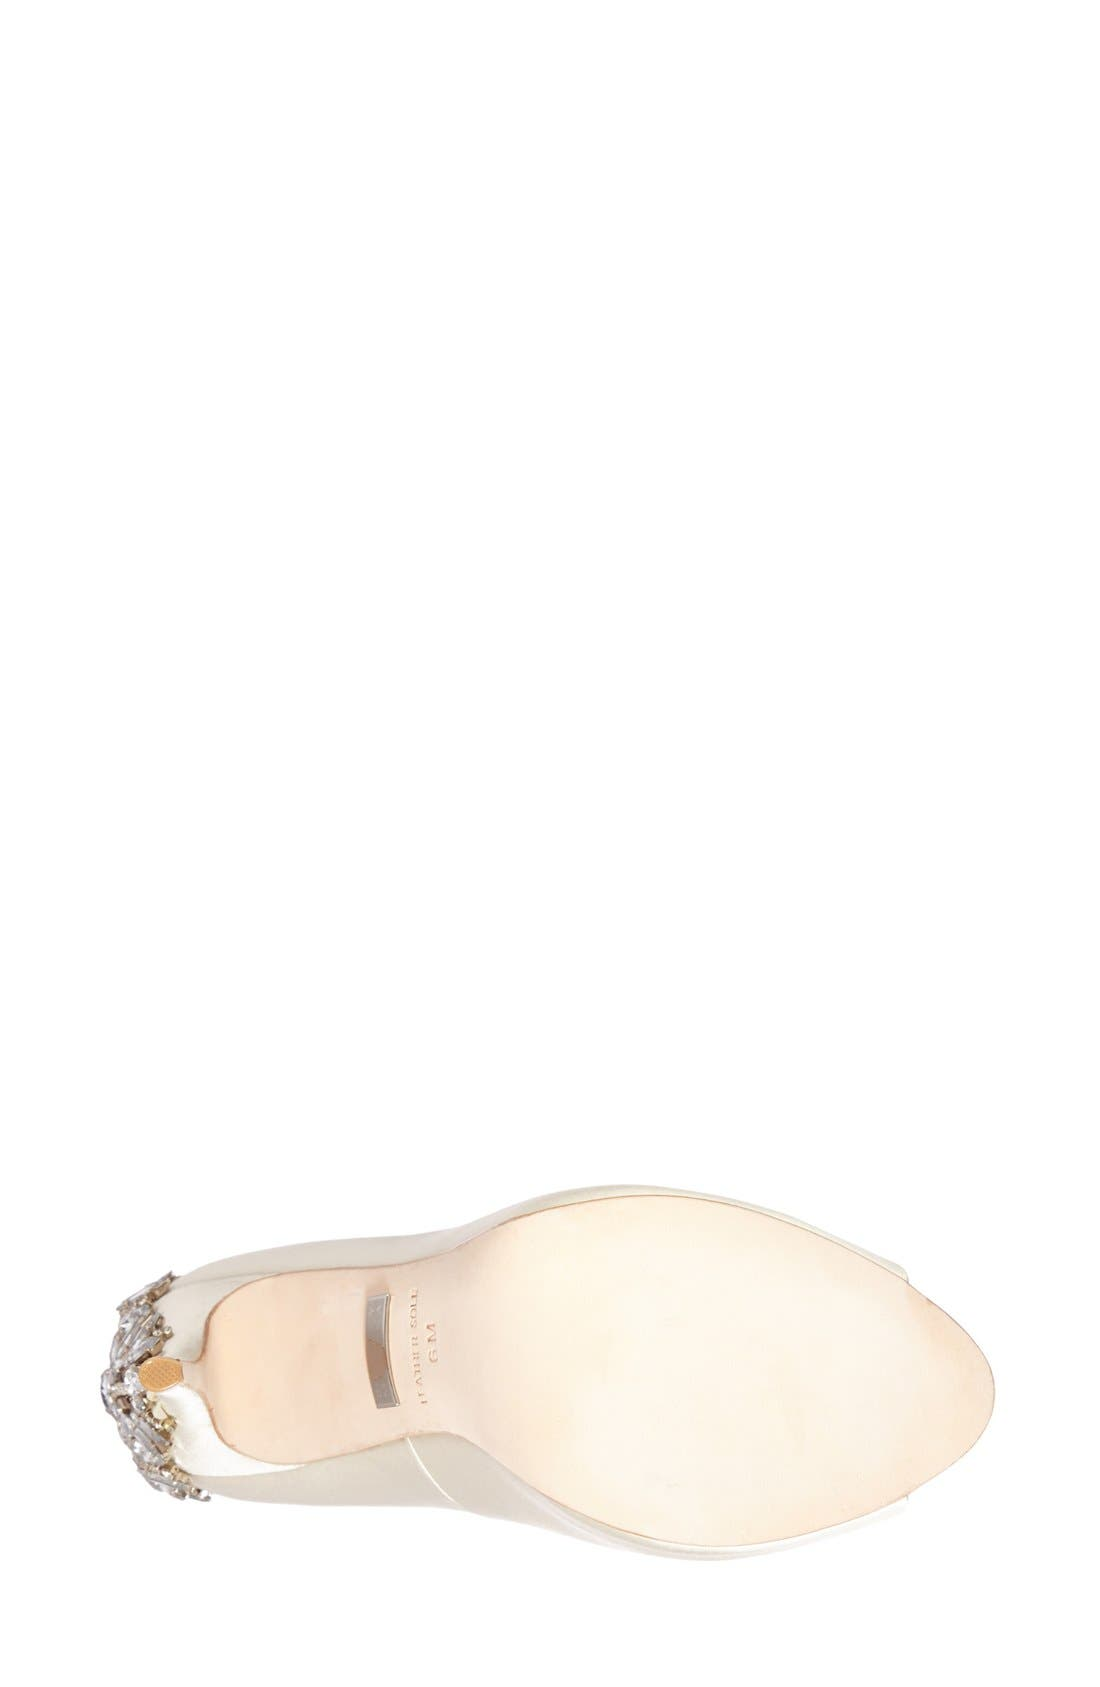 BADGLEY MISCHKA COLLECTION,                             Badgley Mischka 'Kiara' Crystal Back Open Toe Pump,                             Alternate thumbnail 4, color,                             IVORY SATN